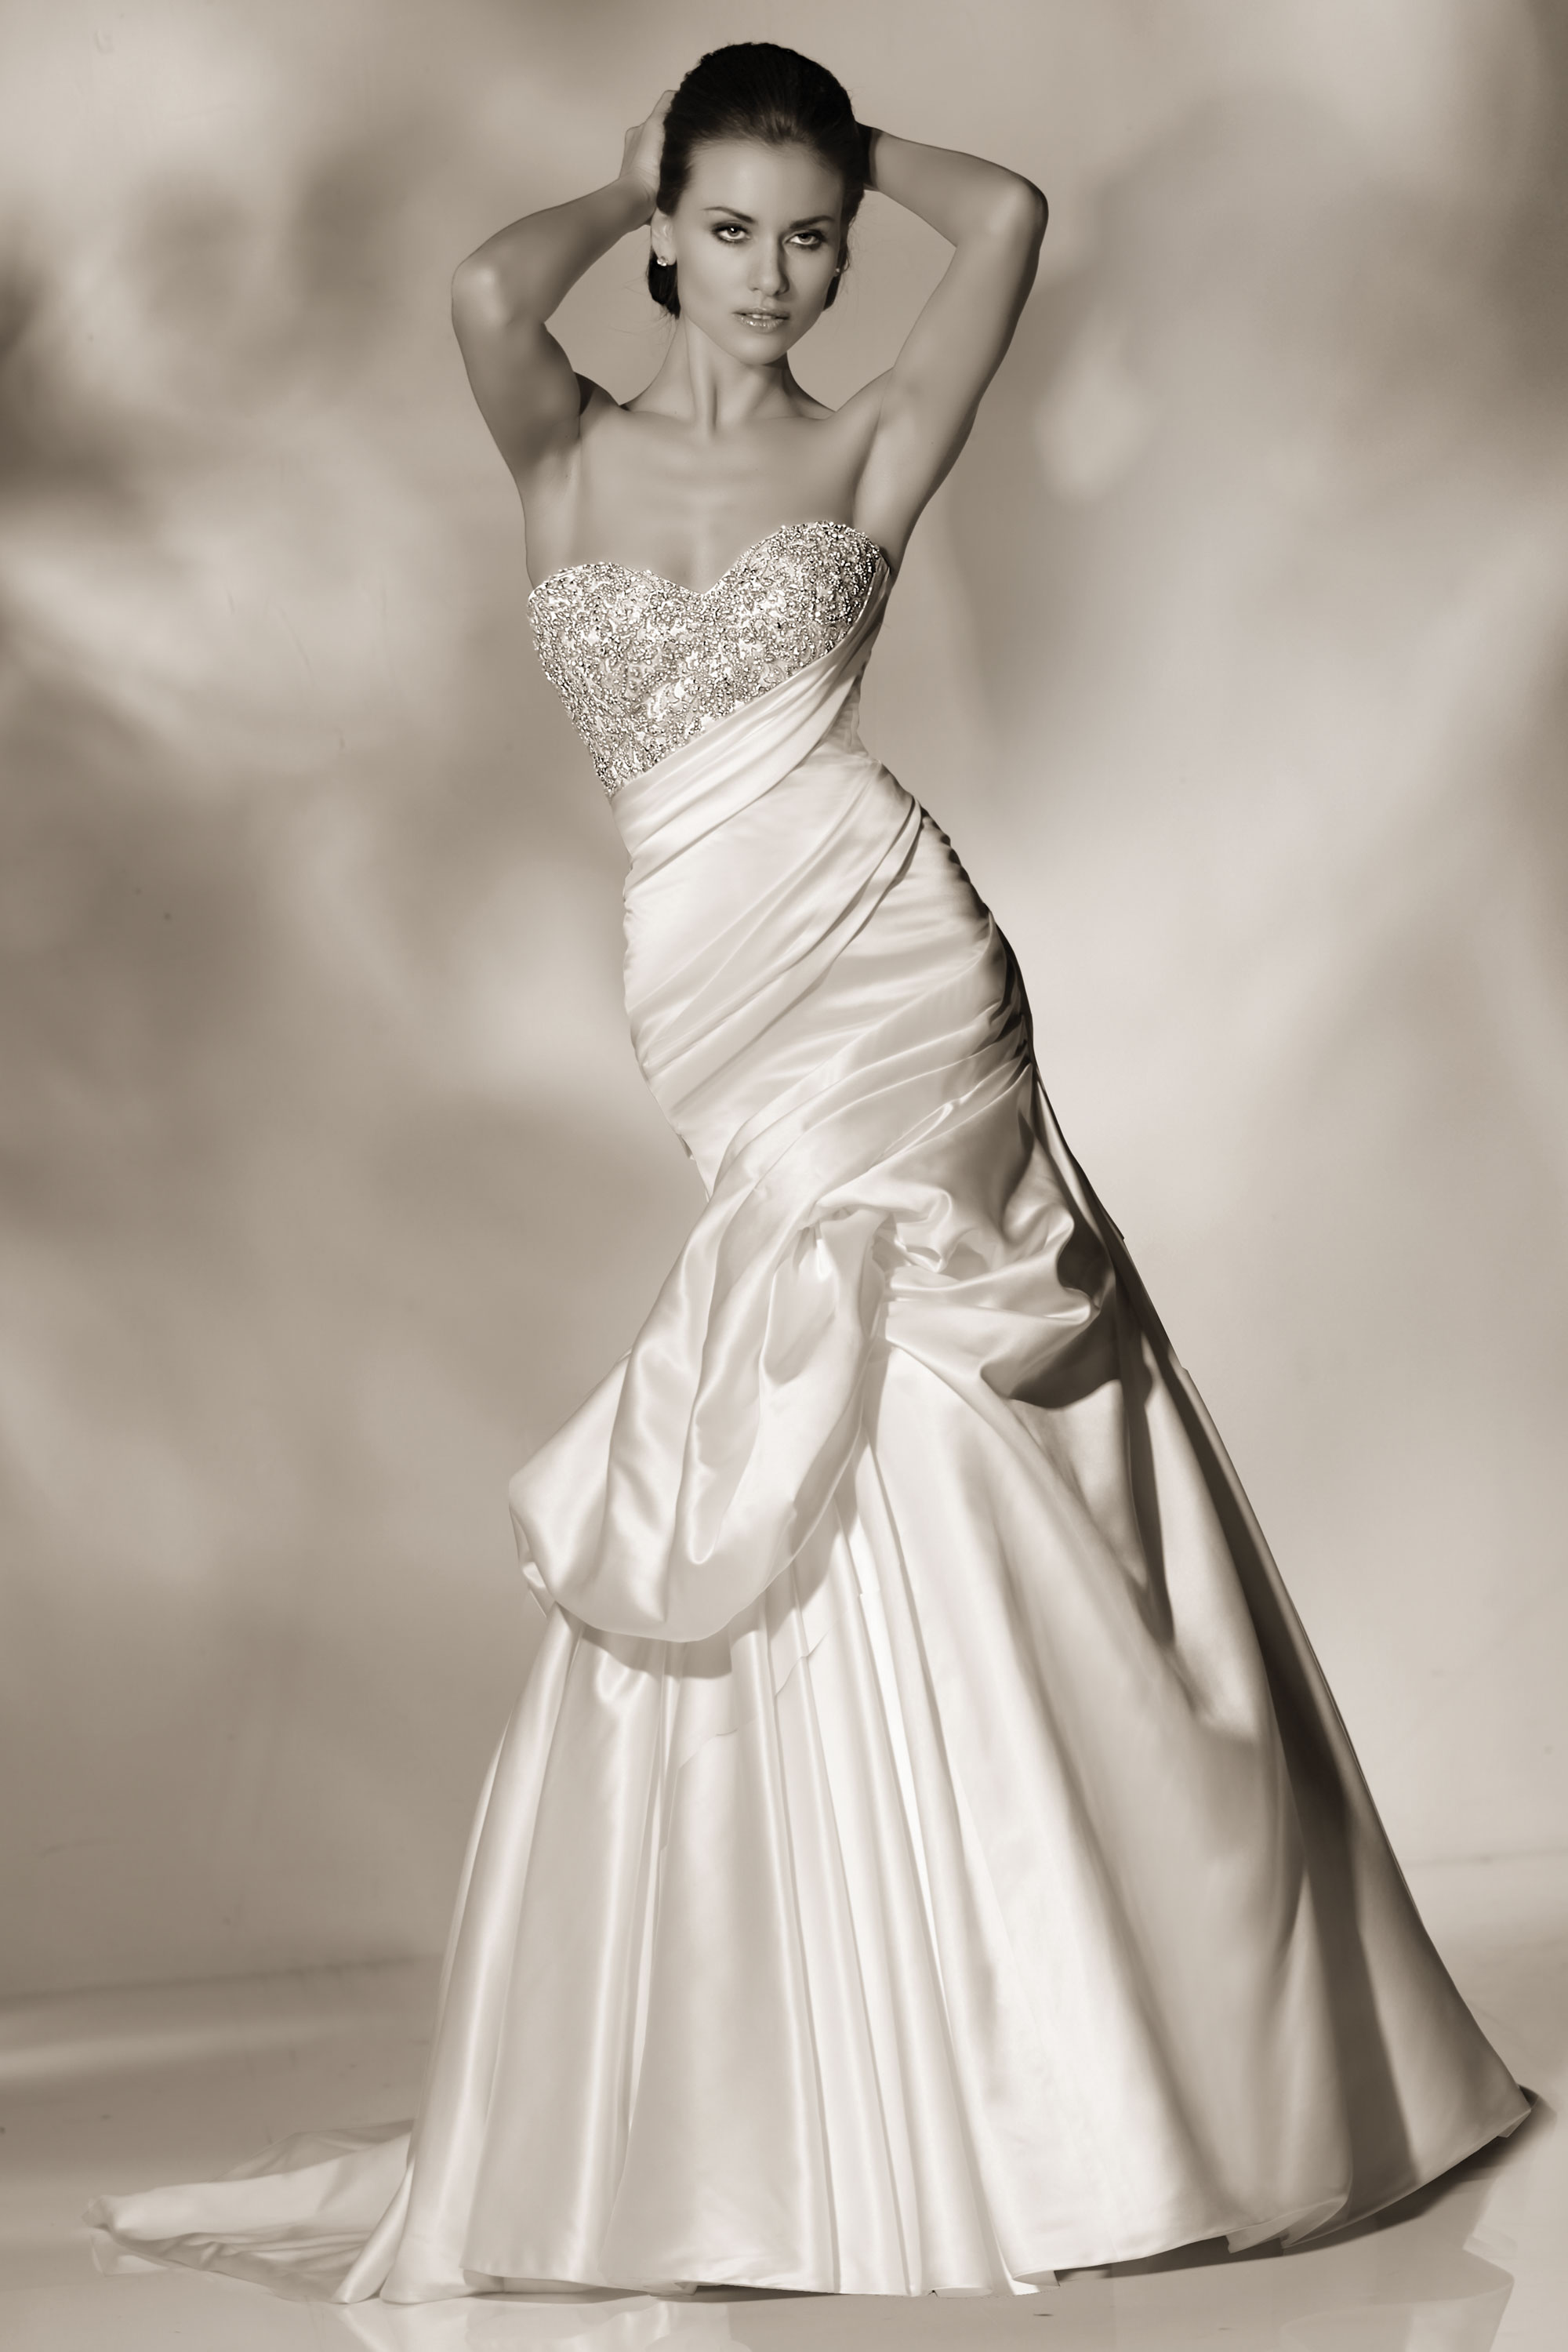 cristiano-lucci-wedding-dresses-24-01052014